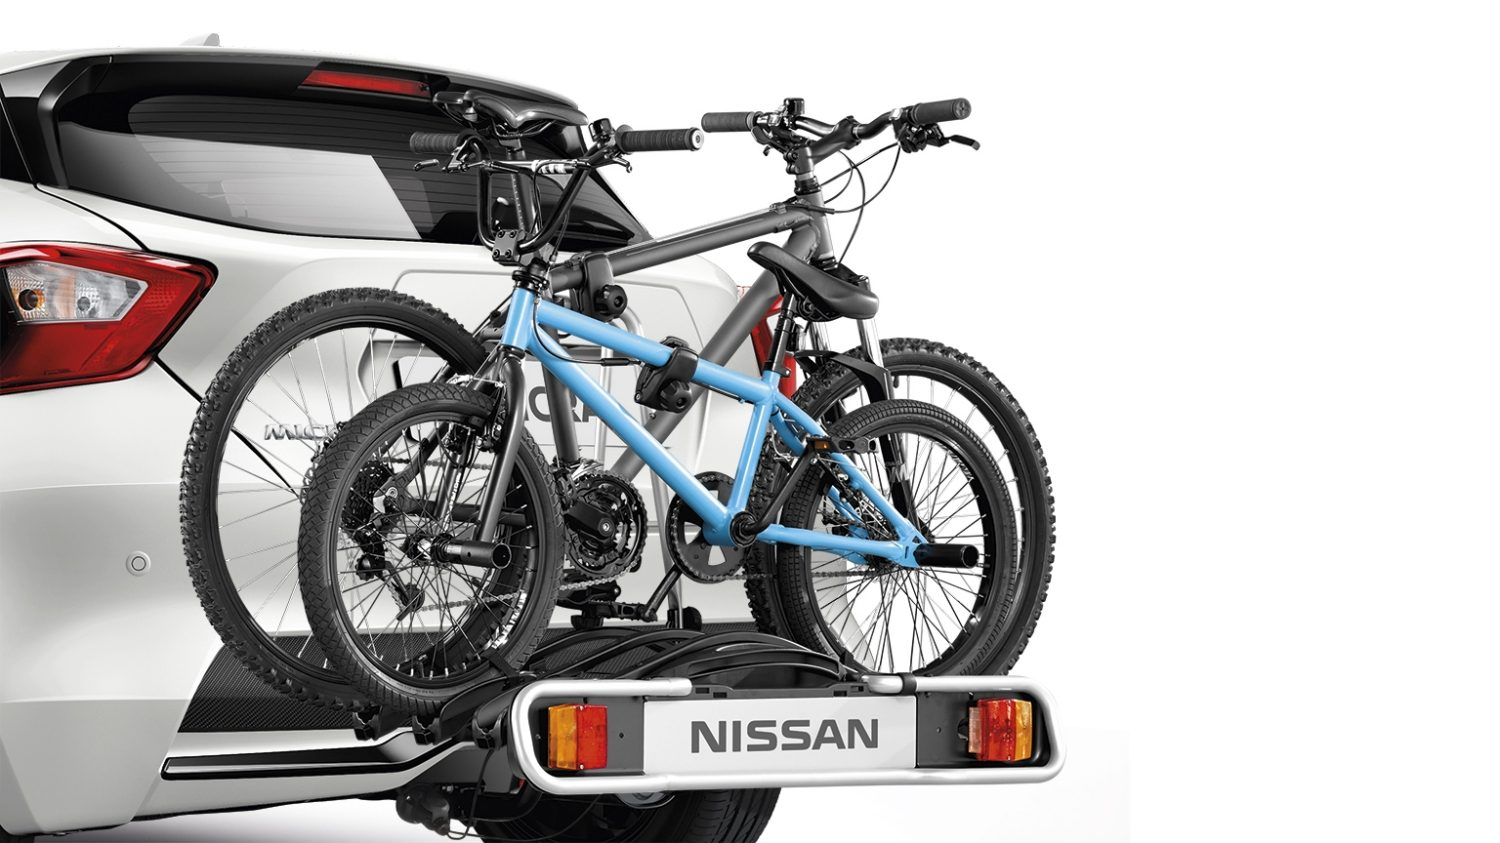 Nissan Micra Bike Carrier Foldable 3 Bikes